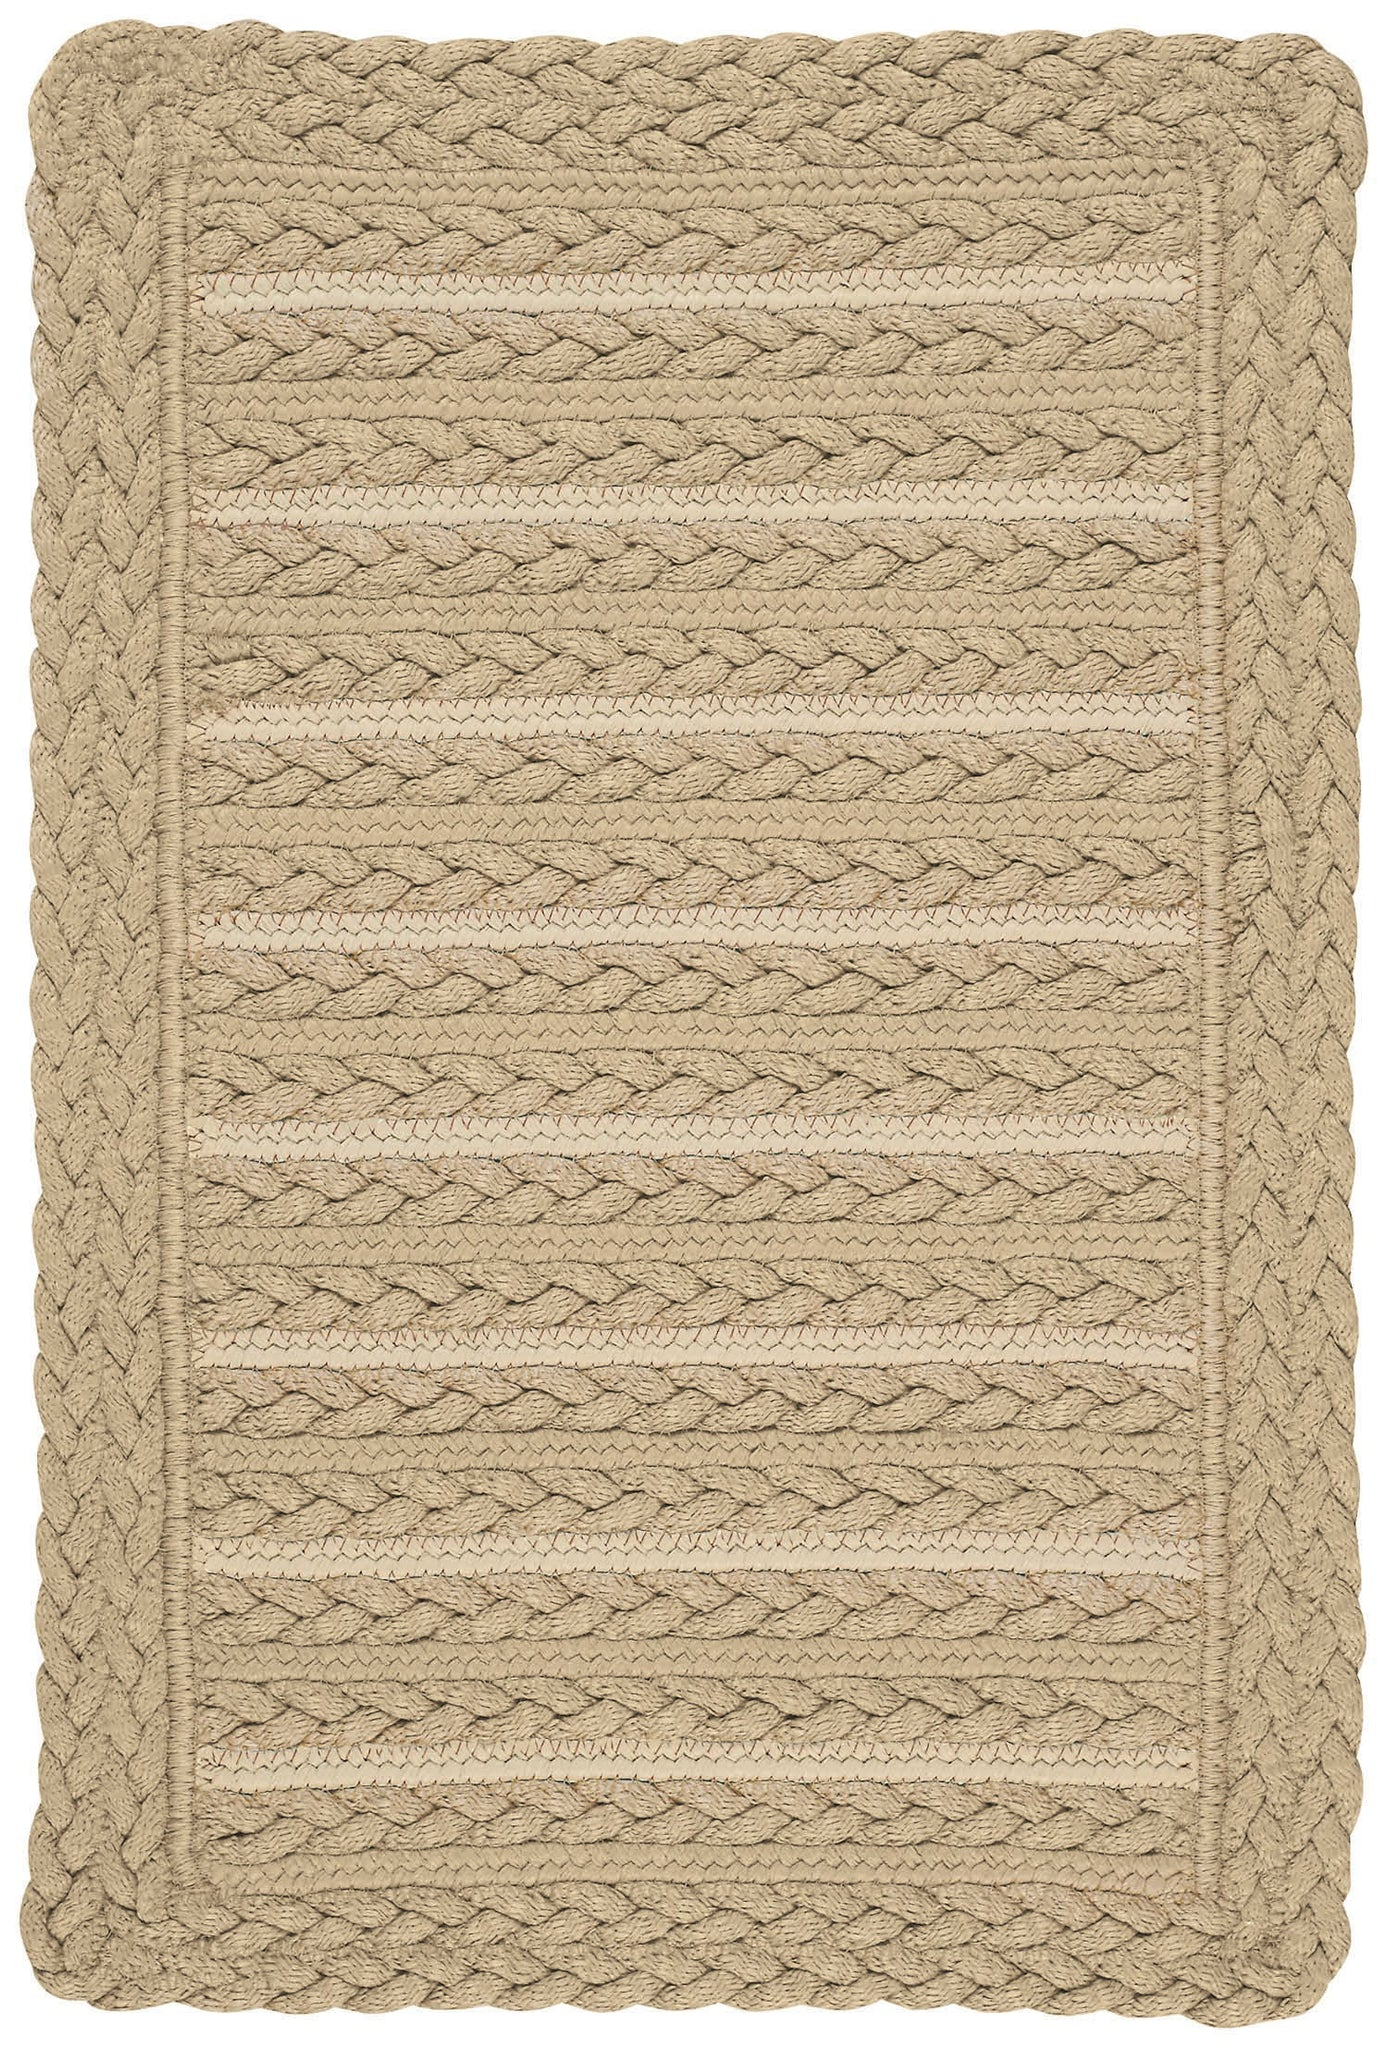 Capel Boathouse 0257 Beige 700 Area Rug main image